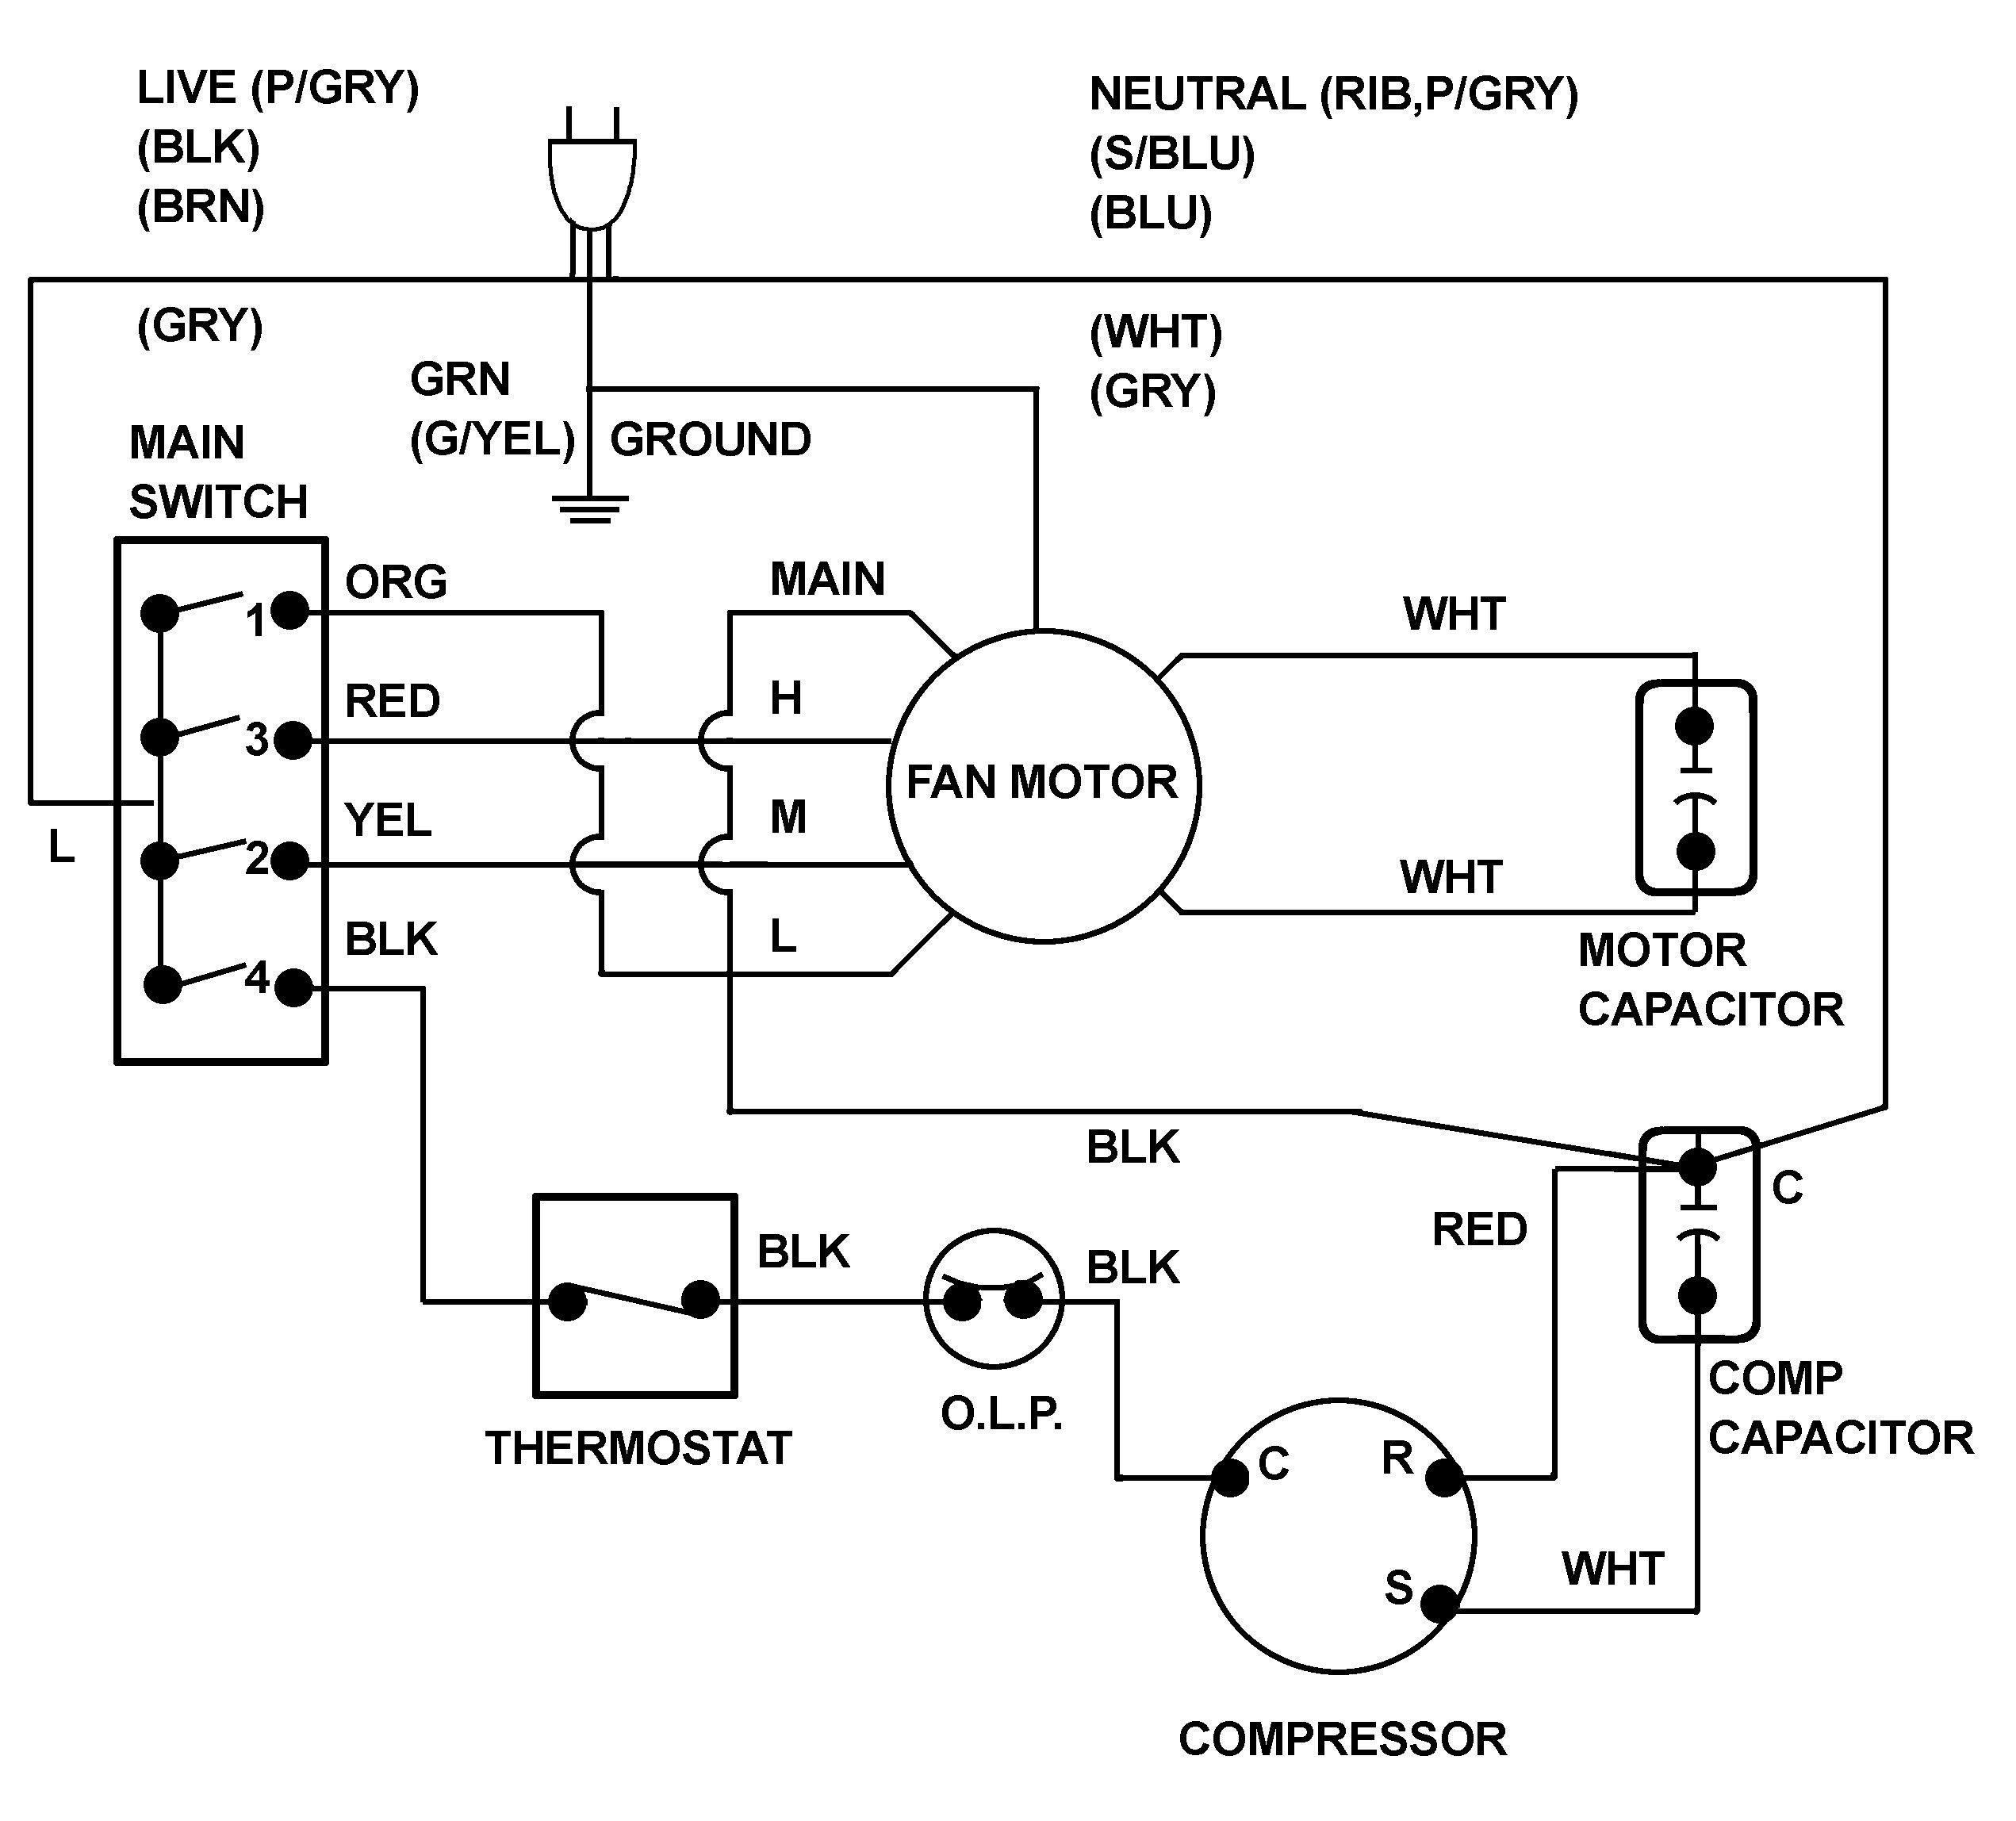 Unique Wiring Diagram Ac Blower Motor Diagram Diagramtemplate Diagramsample Thermostat Wiring Circuit Diagram Electrical Circuit Diagram